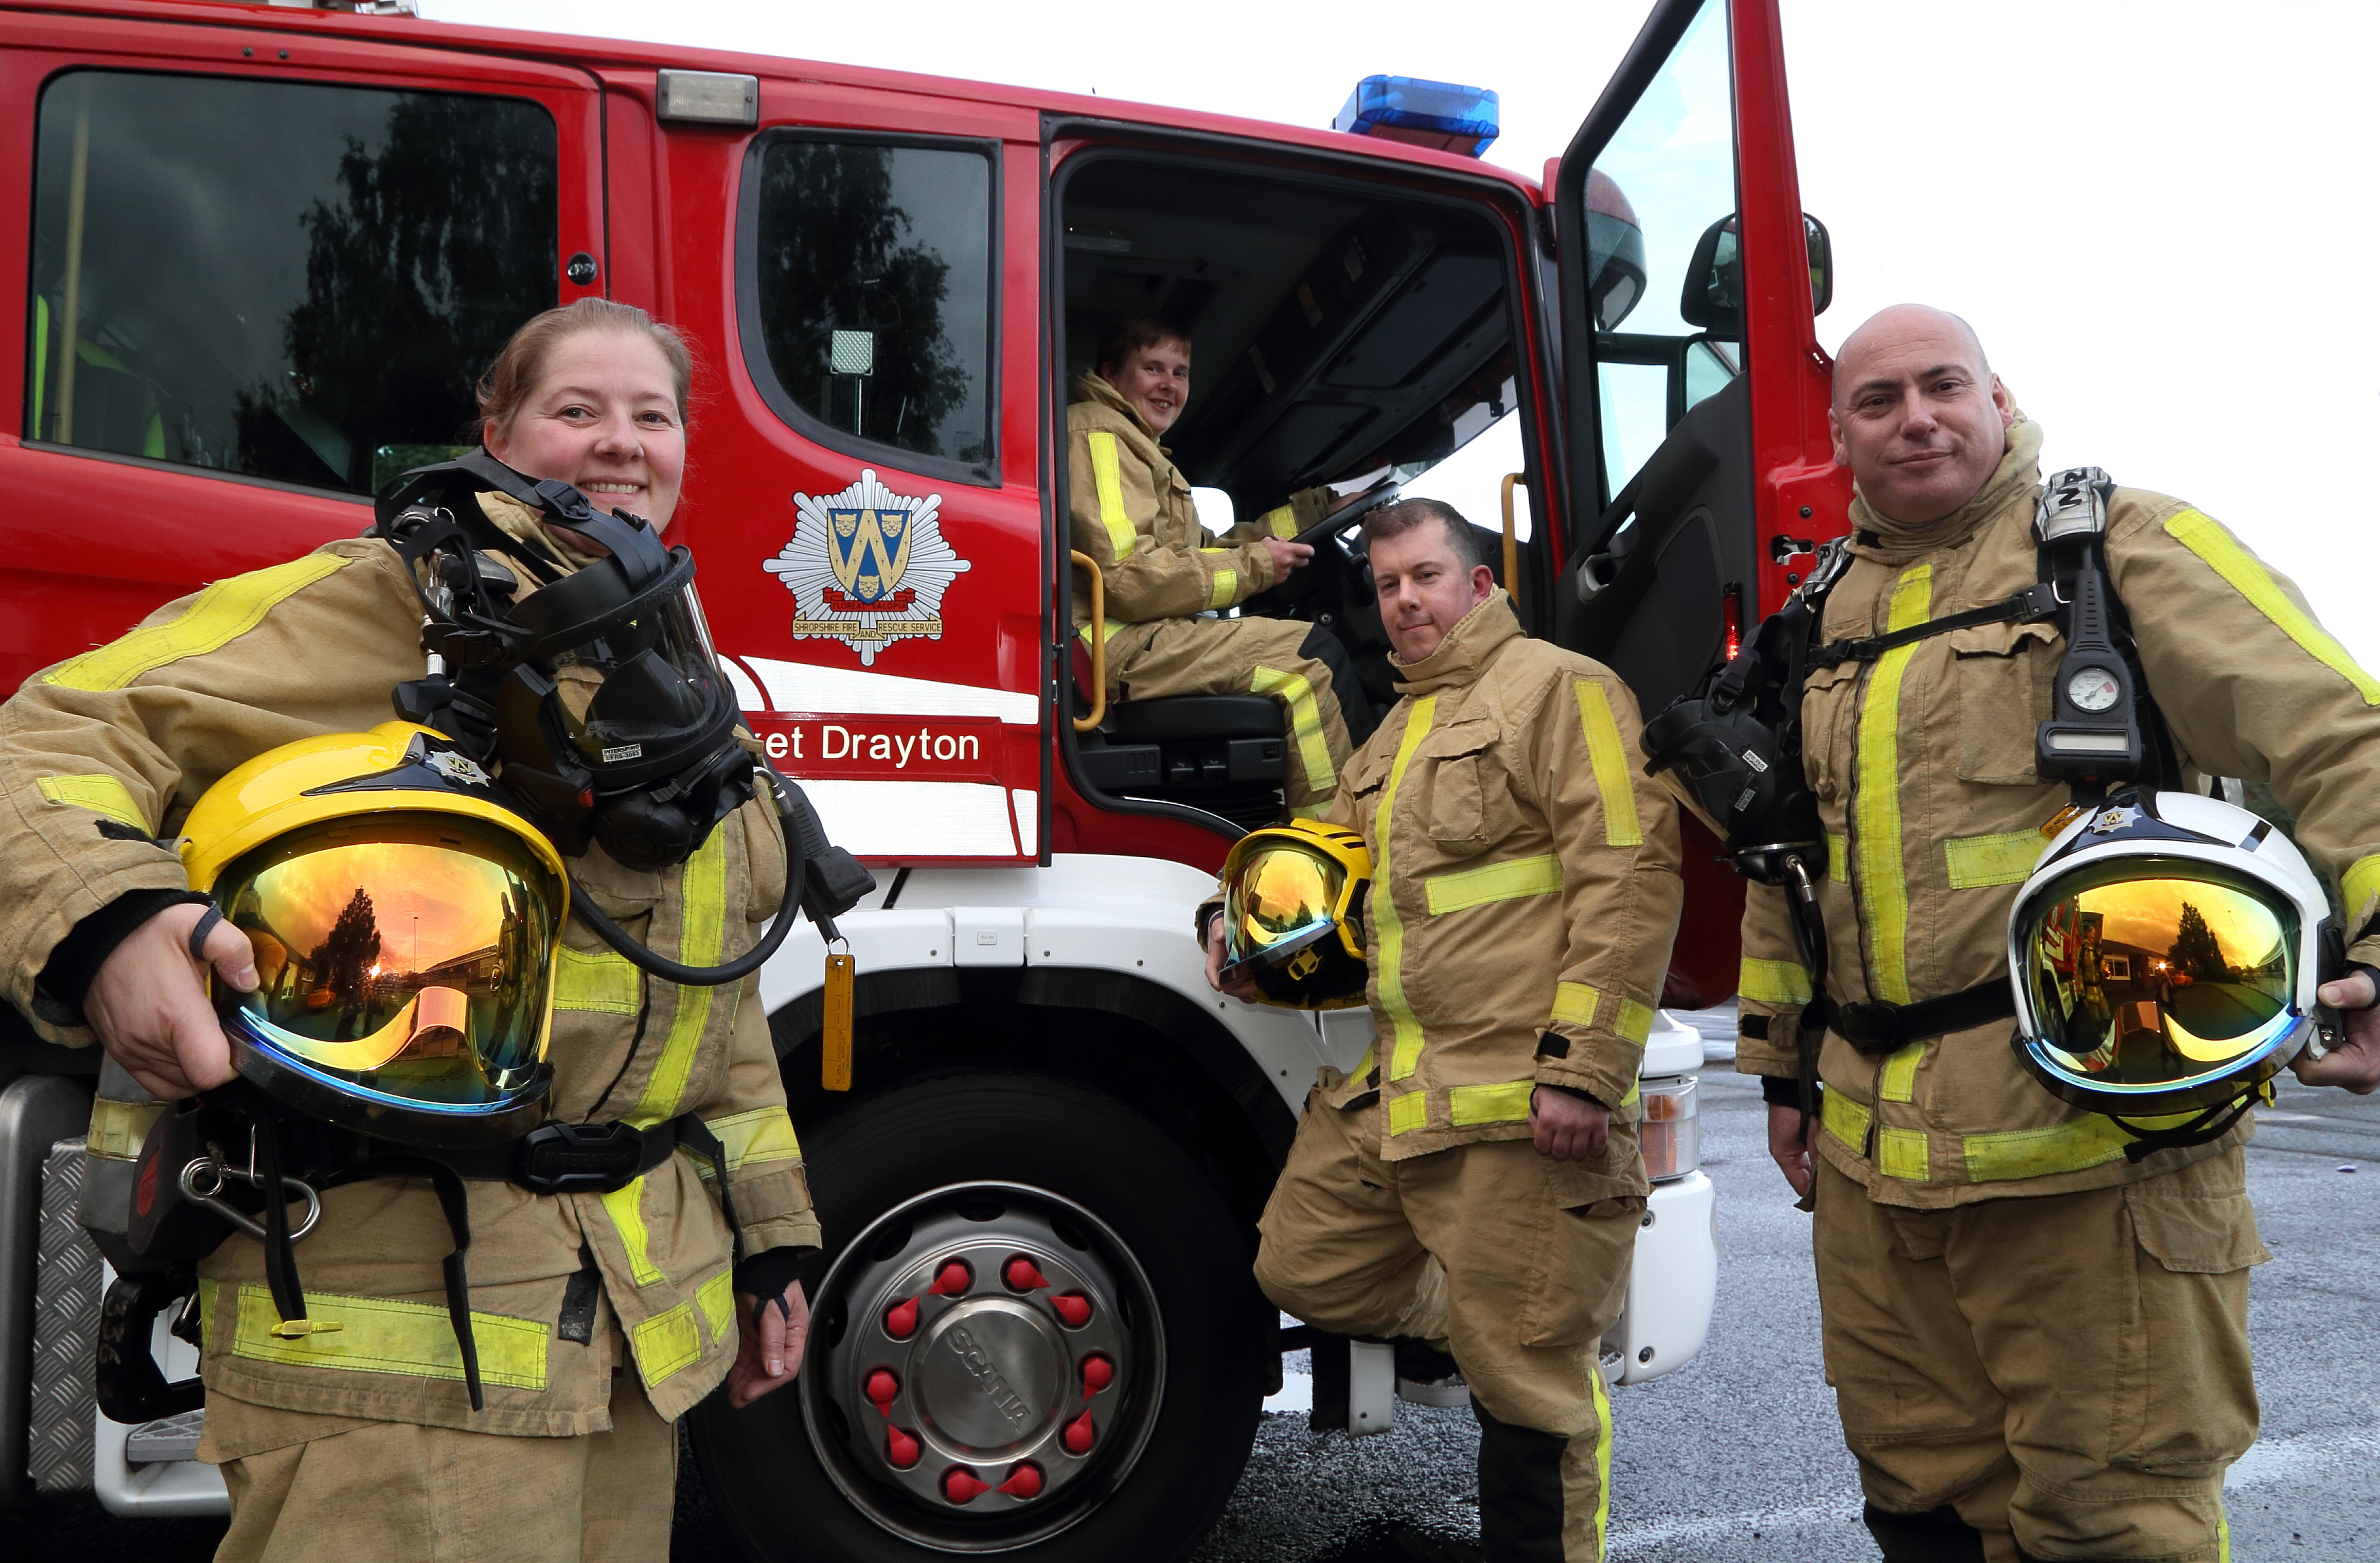 Firefighters Sarah Cartwright, Sally Eynon, Leon Turner and Mark Smith at Market Drayton Fire Station.